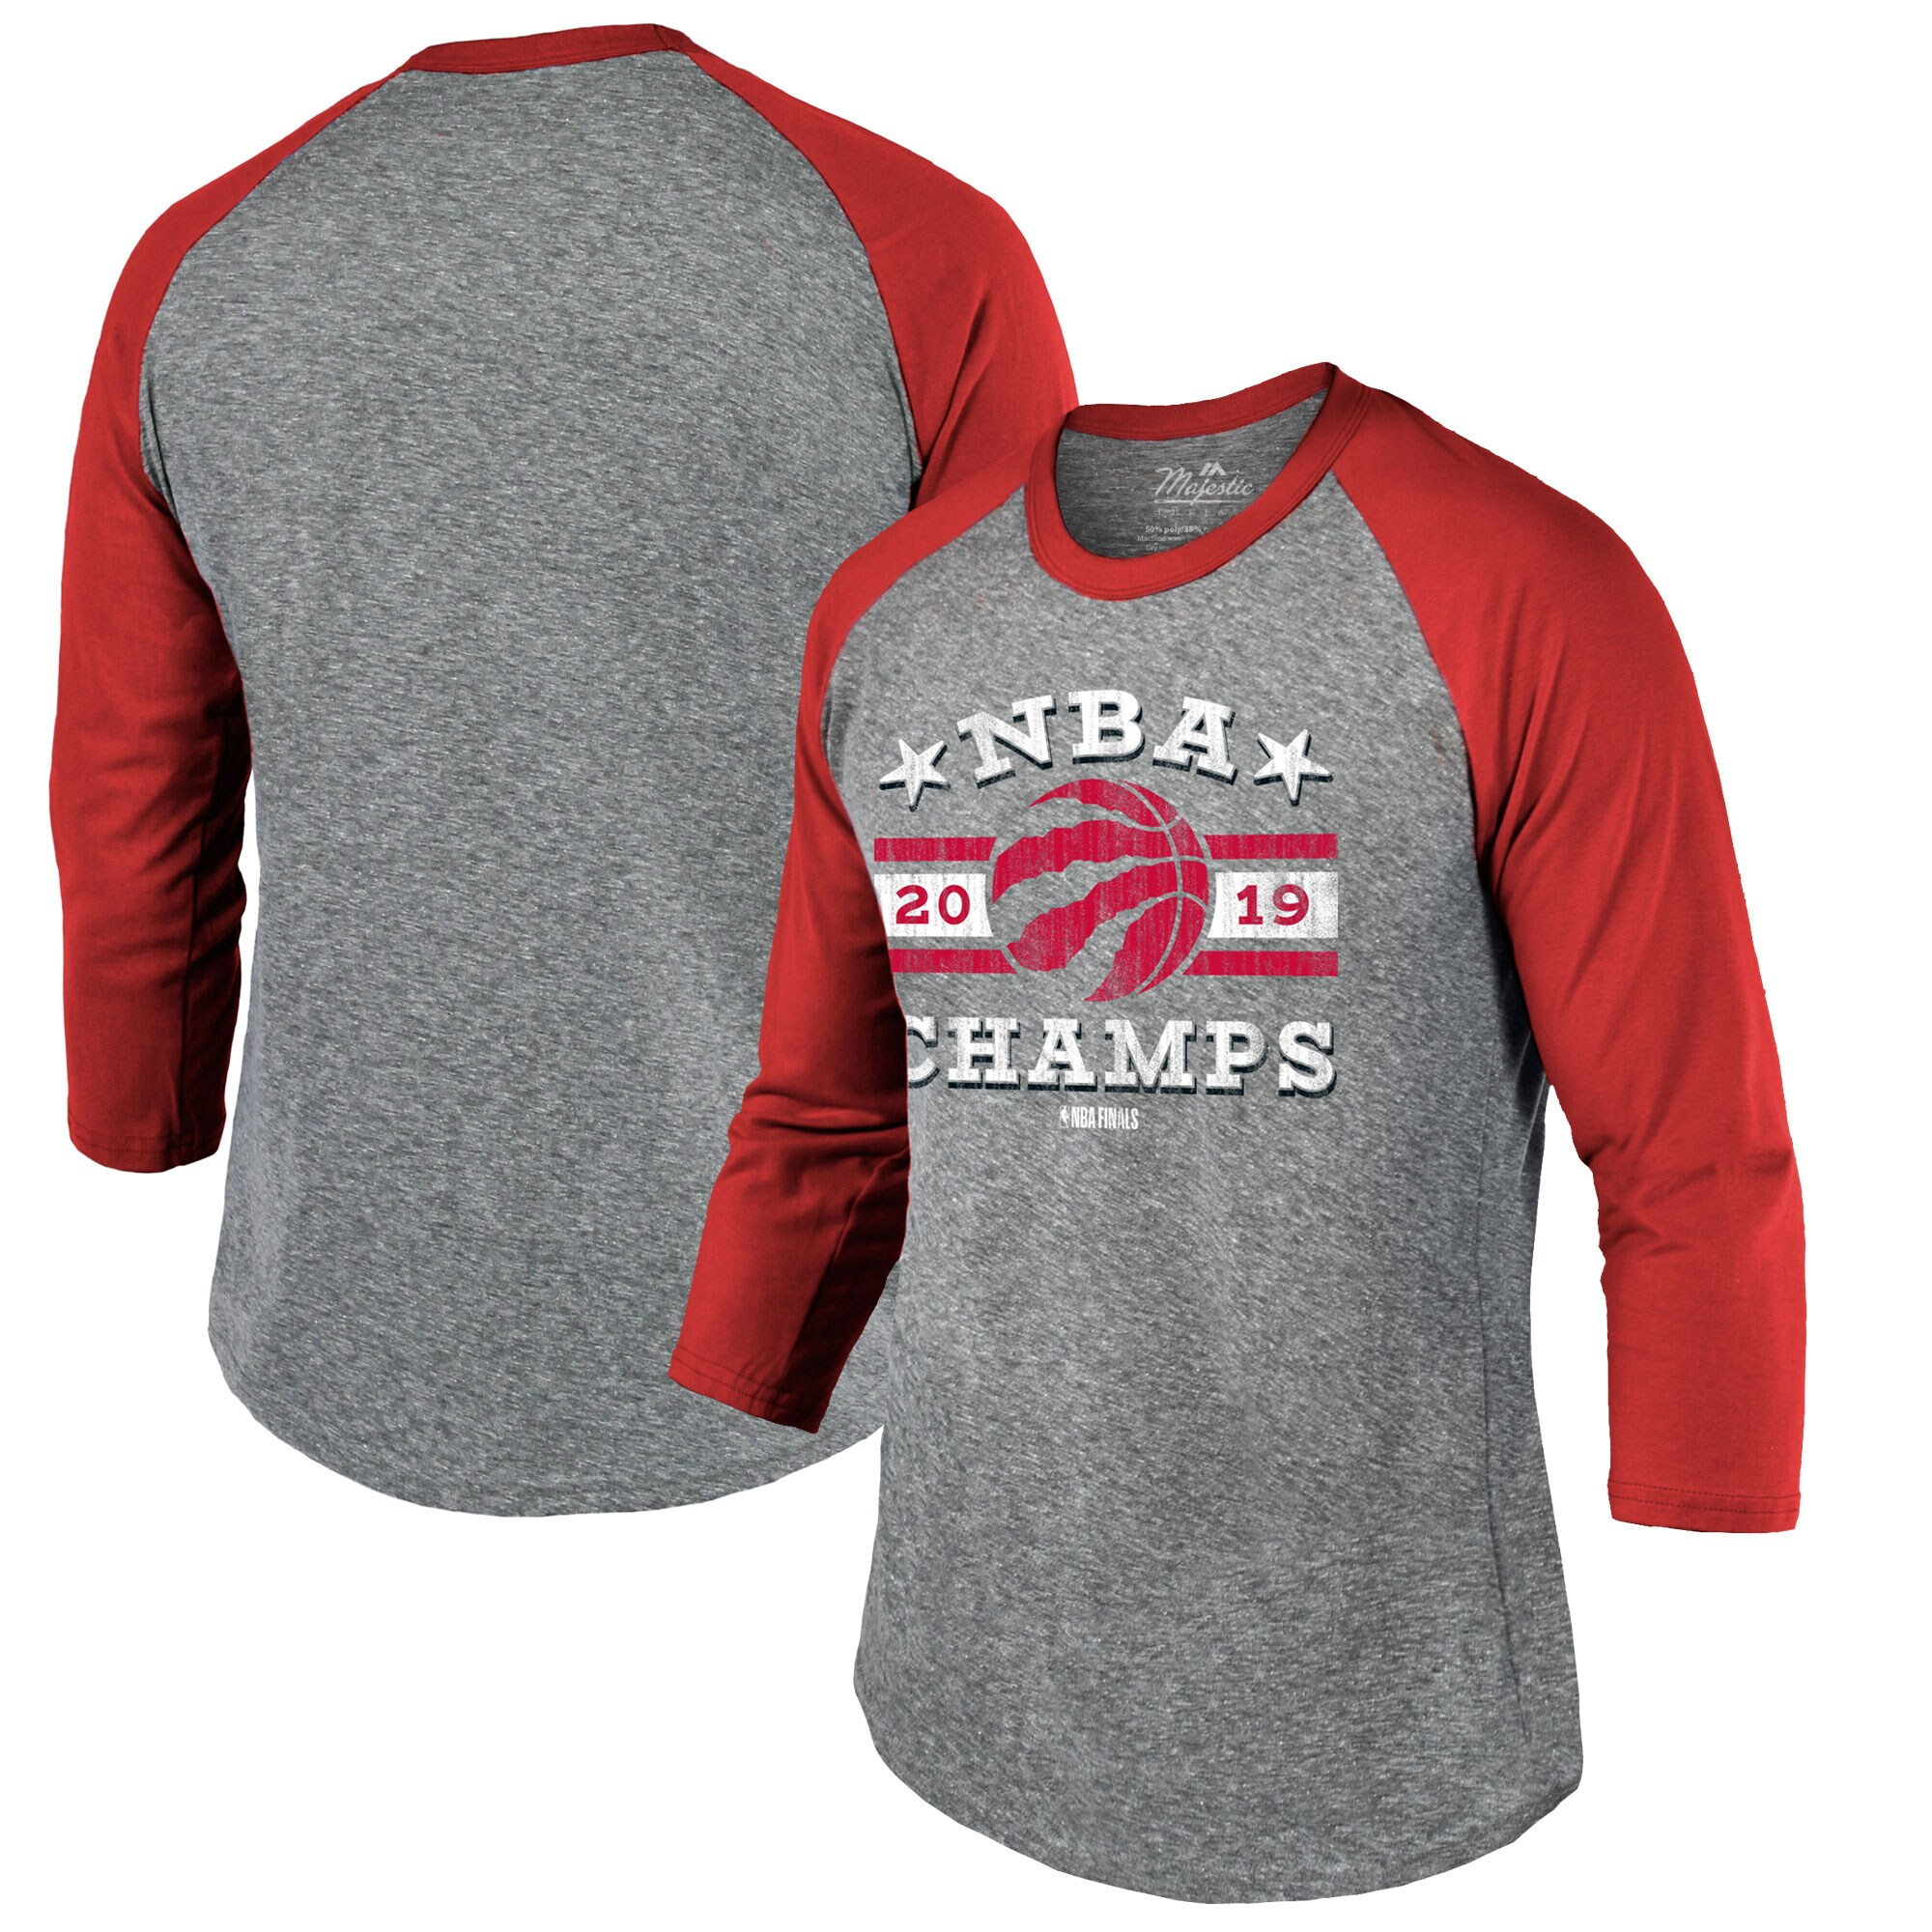 Toronto Raptors Majestic Threads 2019 NBA Finals Champions Raglan 3/4 Sleeve T-Shirt - Heather Gray/Red